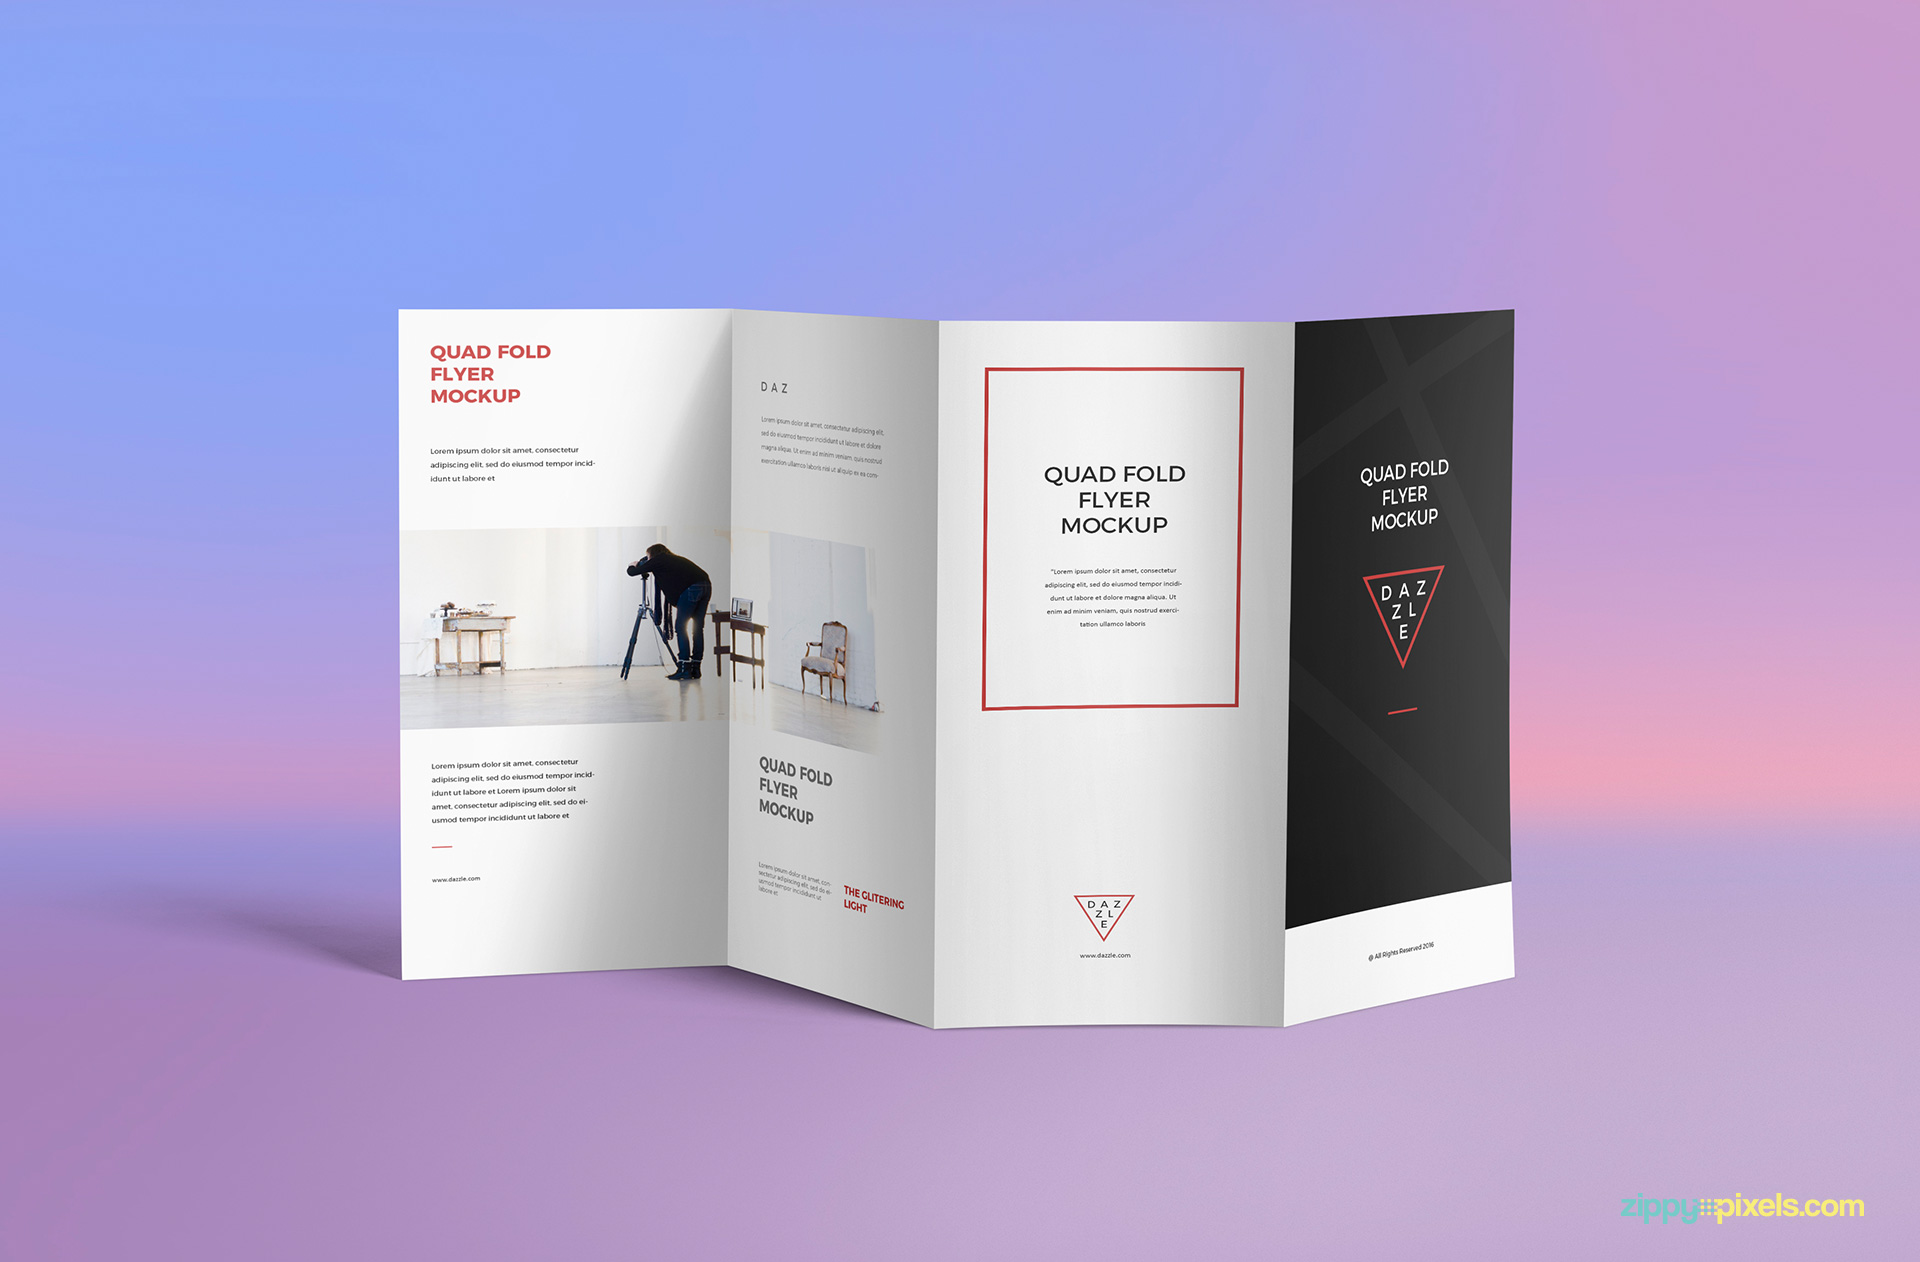 Free 4 fold brochure mockup zippypixels for Quad fold brochure template